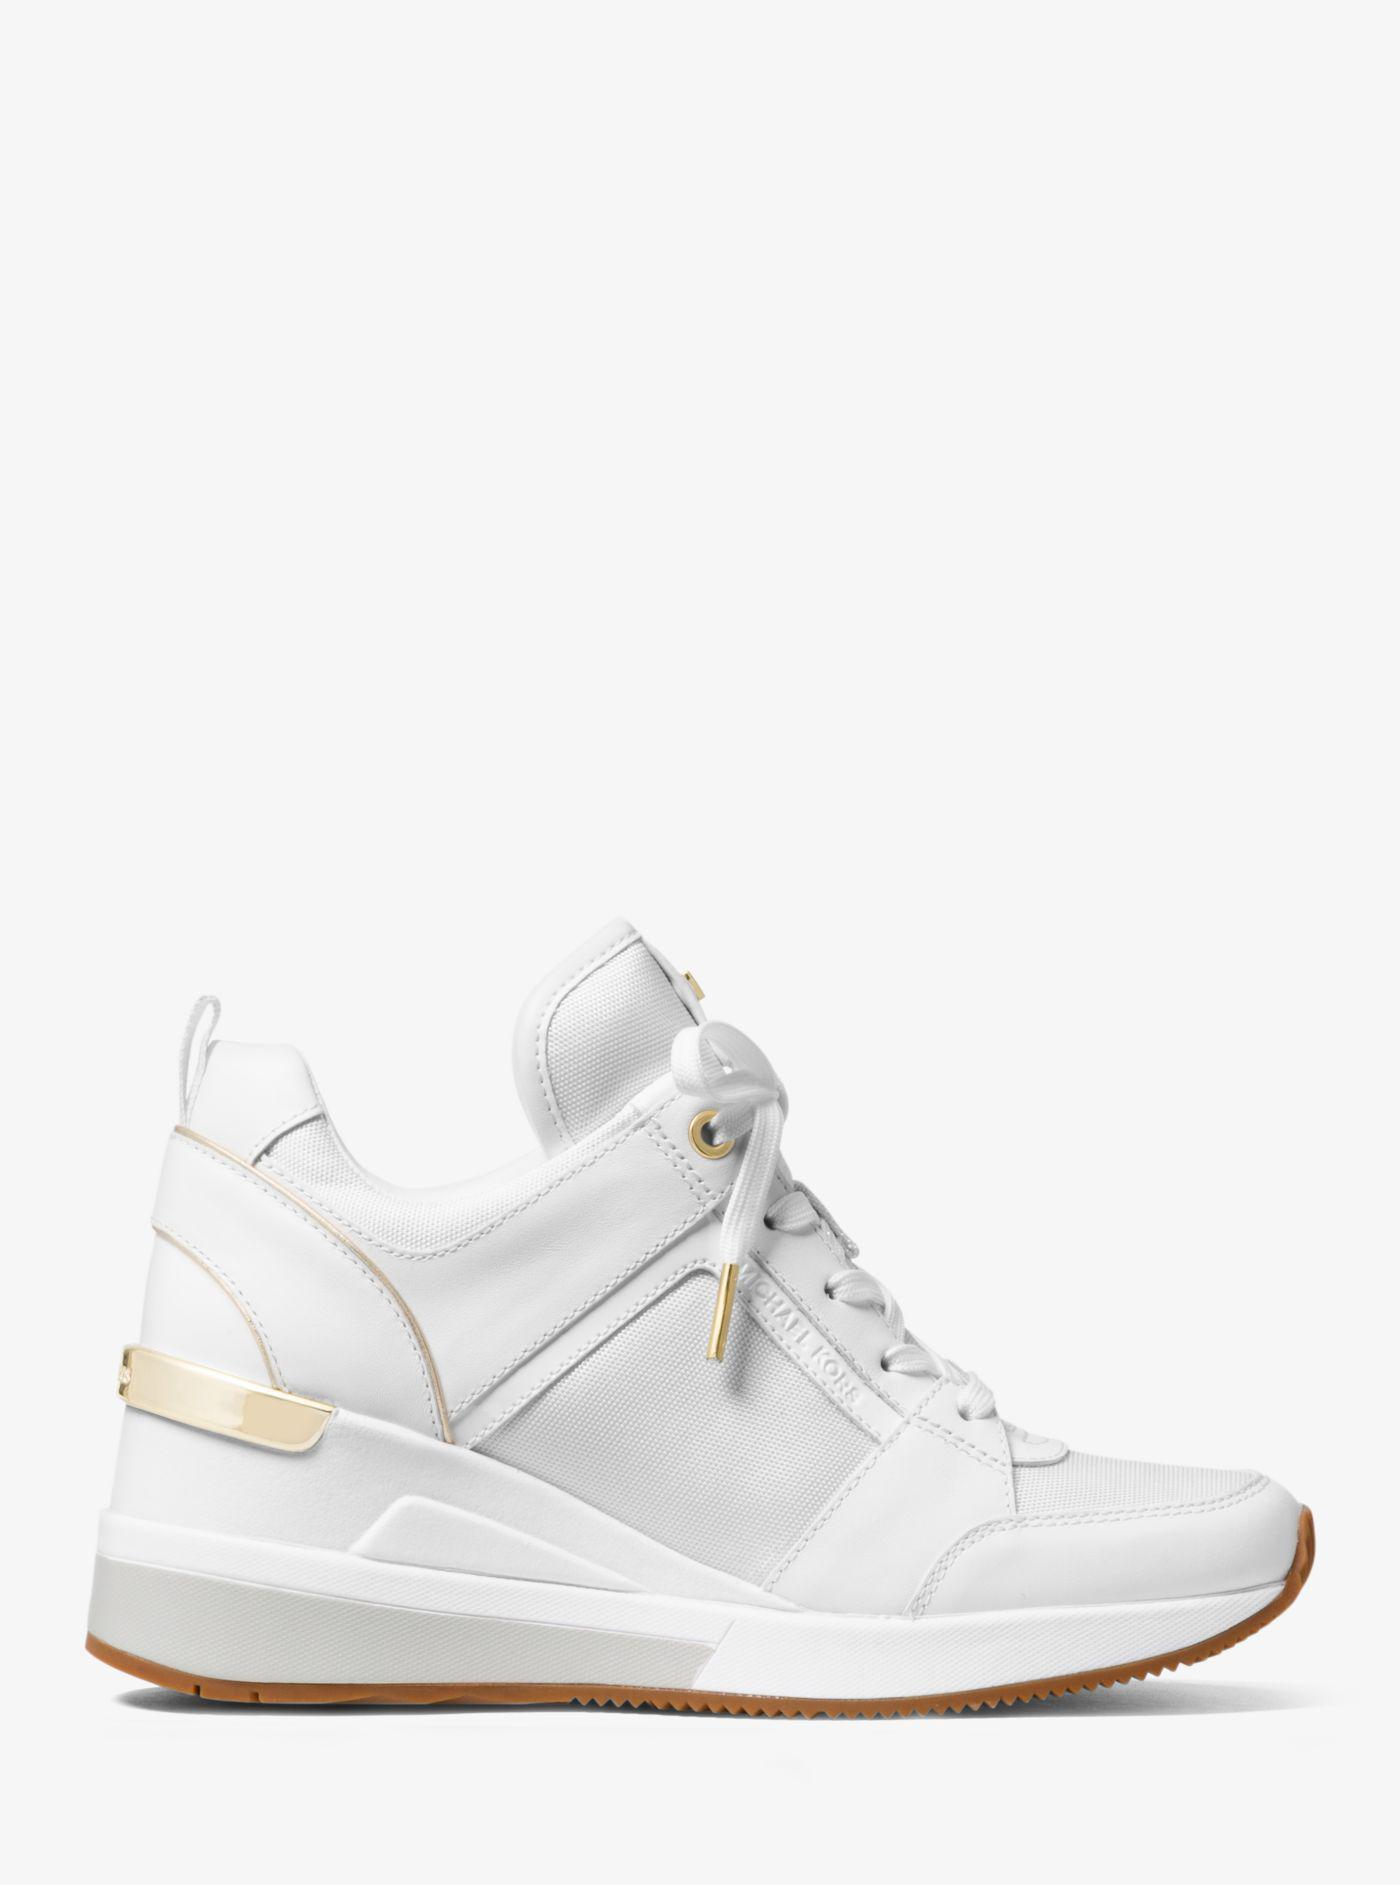 958c6c83ed2 Michael Kors Georgie Canvas And Leather Sneaker in White - Lyst